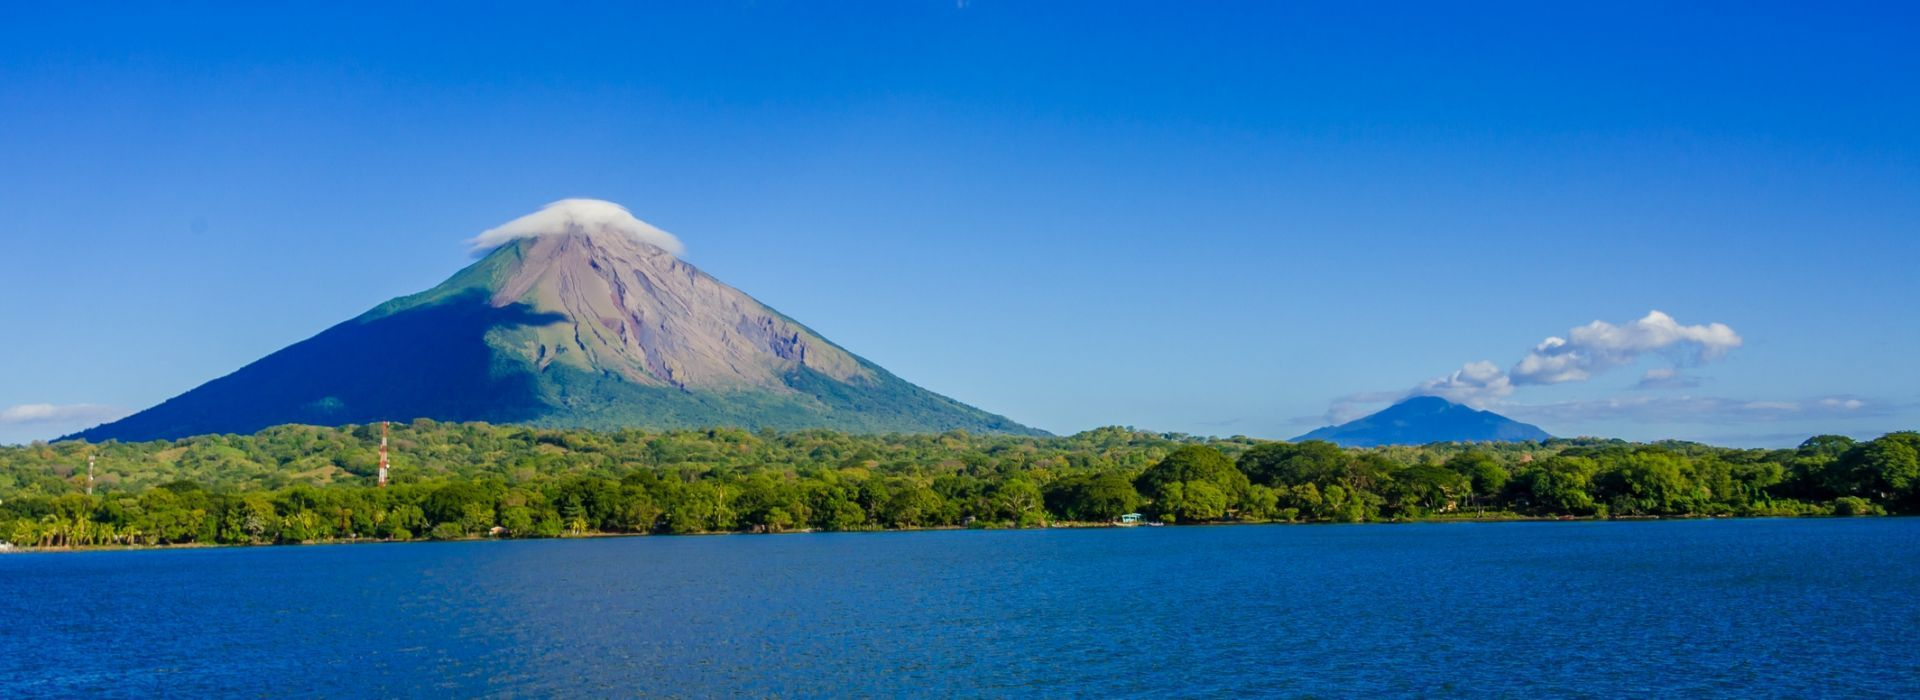 Sightseeing, attractions, culture and history Tours in Nicaragua